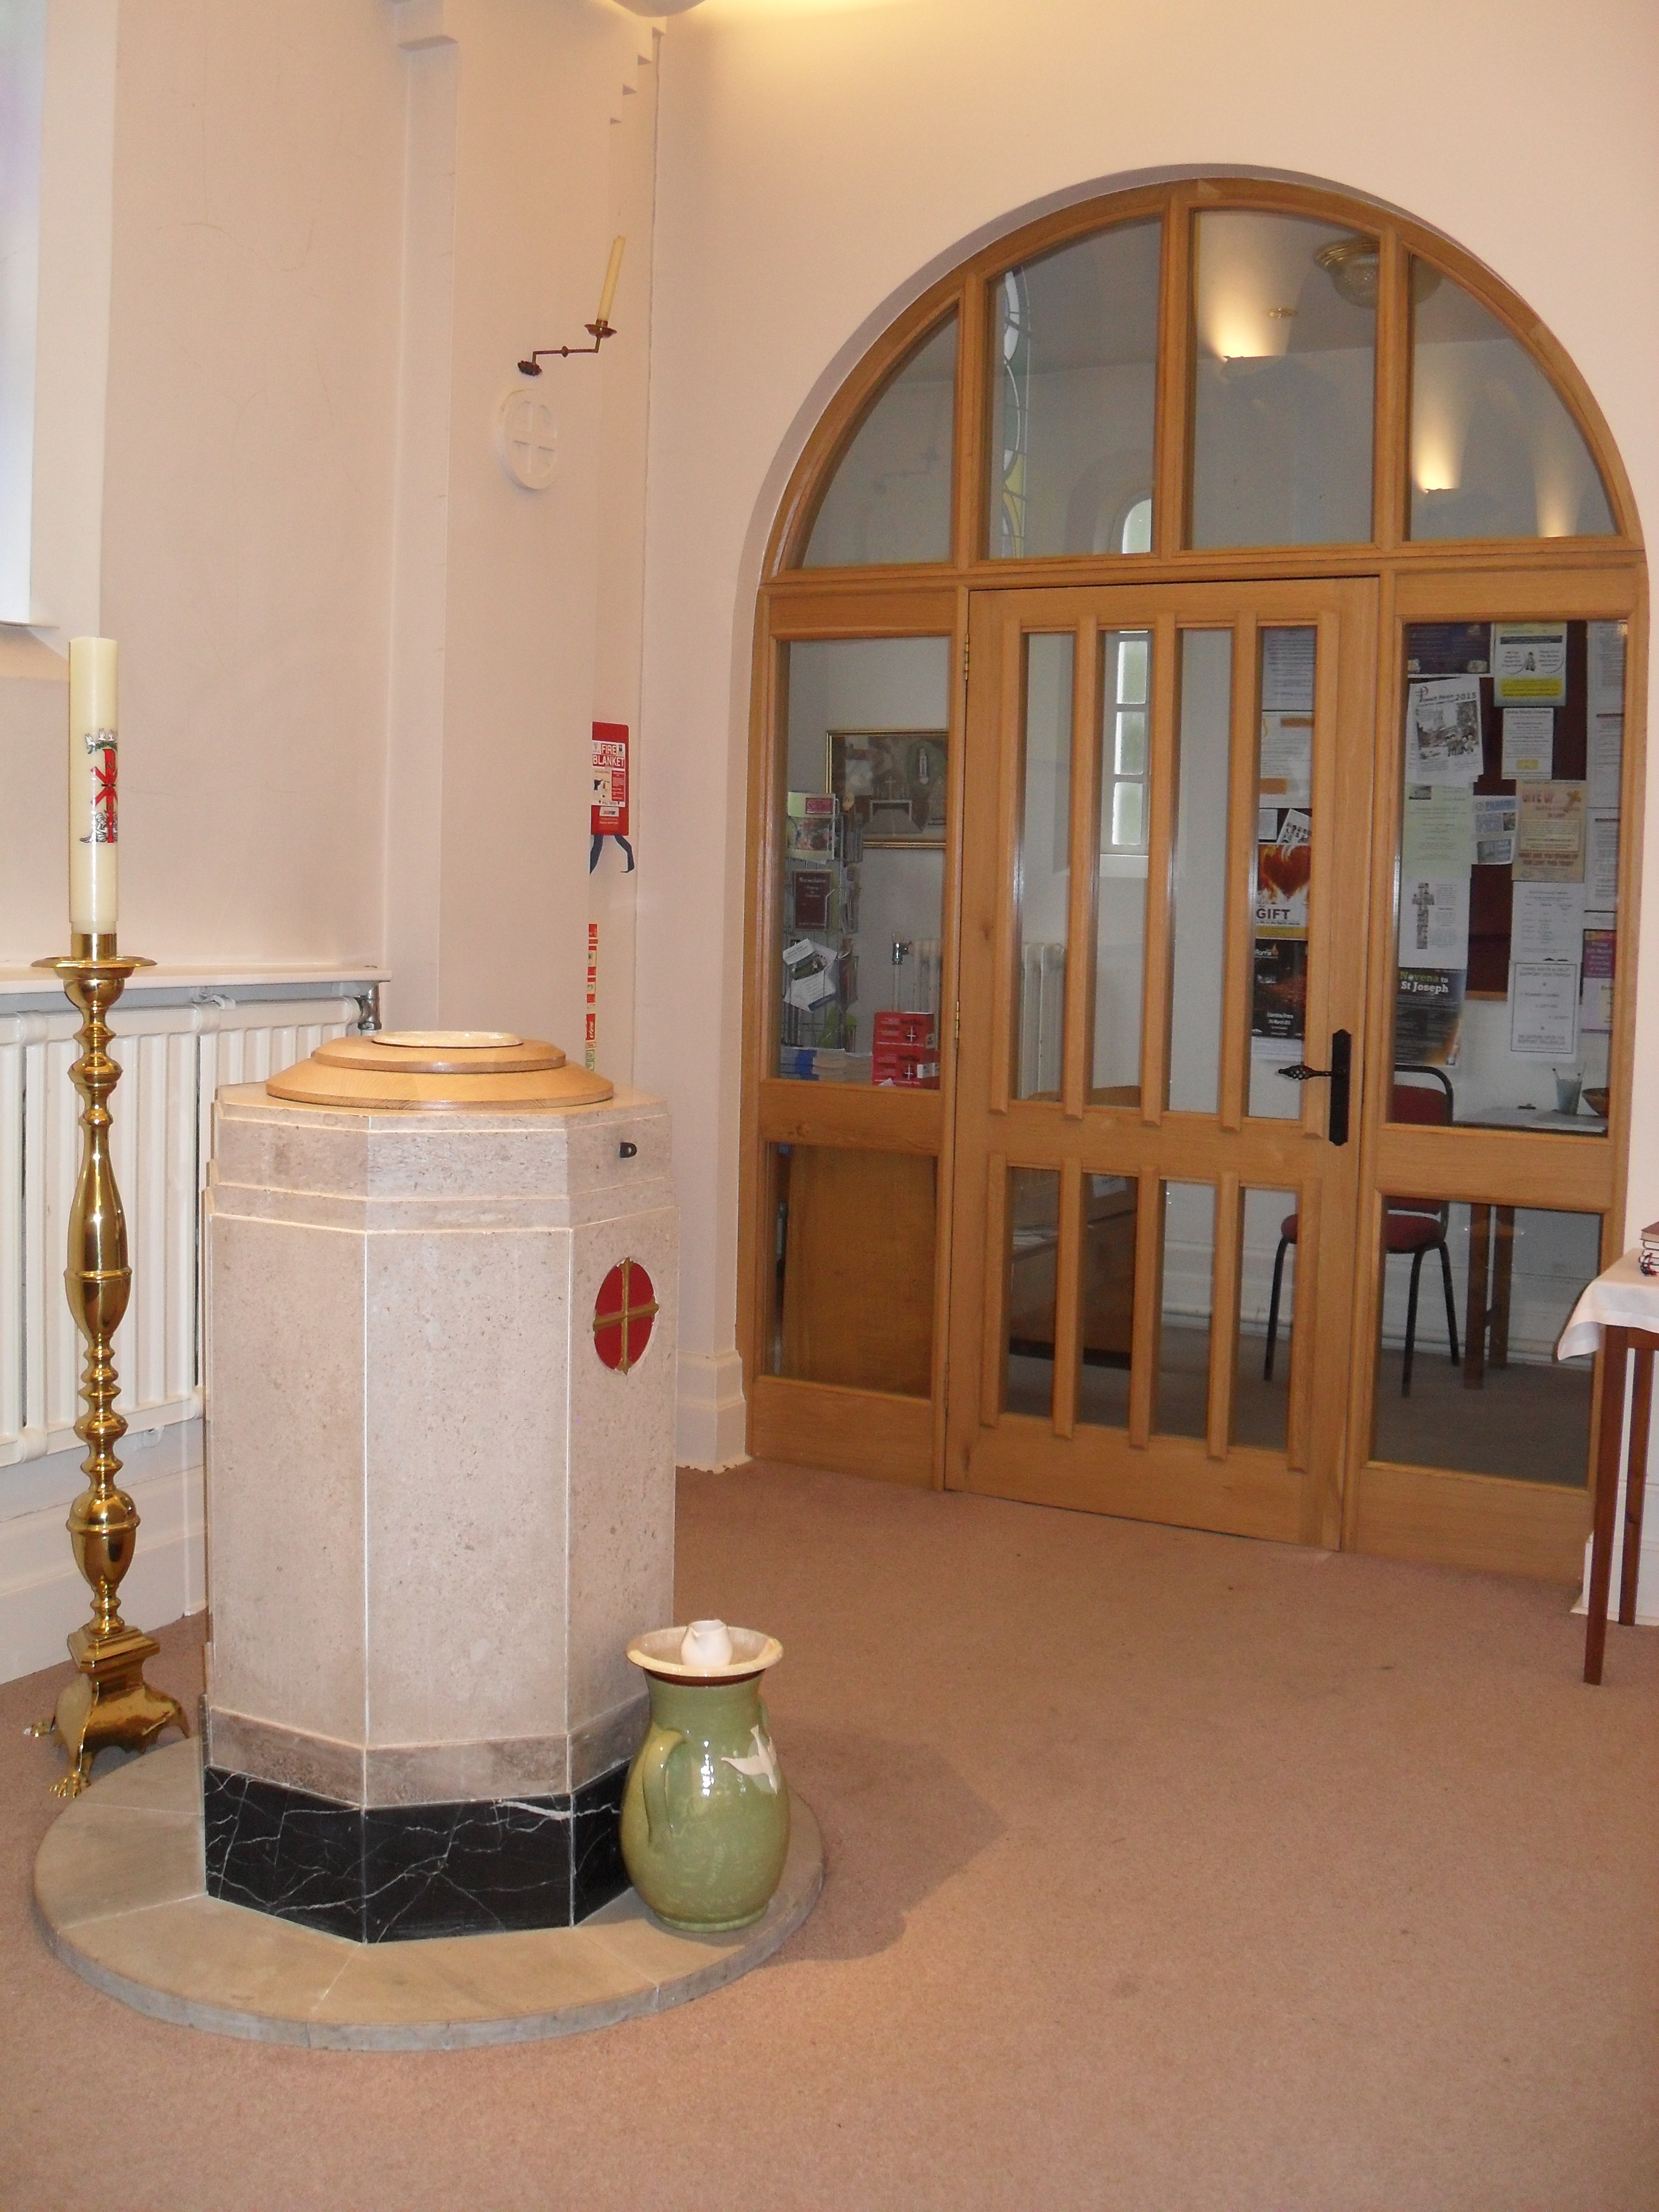 Baptism and Confirmation are two of the Sacraments of Initiation into the Church which is the universal Sacrament of salvation \u2013 the visible making-present ... & Baptism   Holy Spirit Catholic Church Bovey Tracey Devon TQ13 9BY